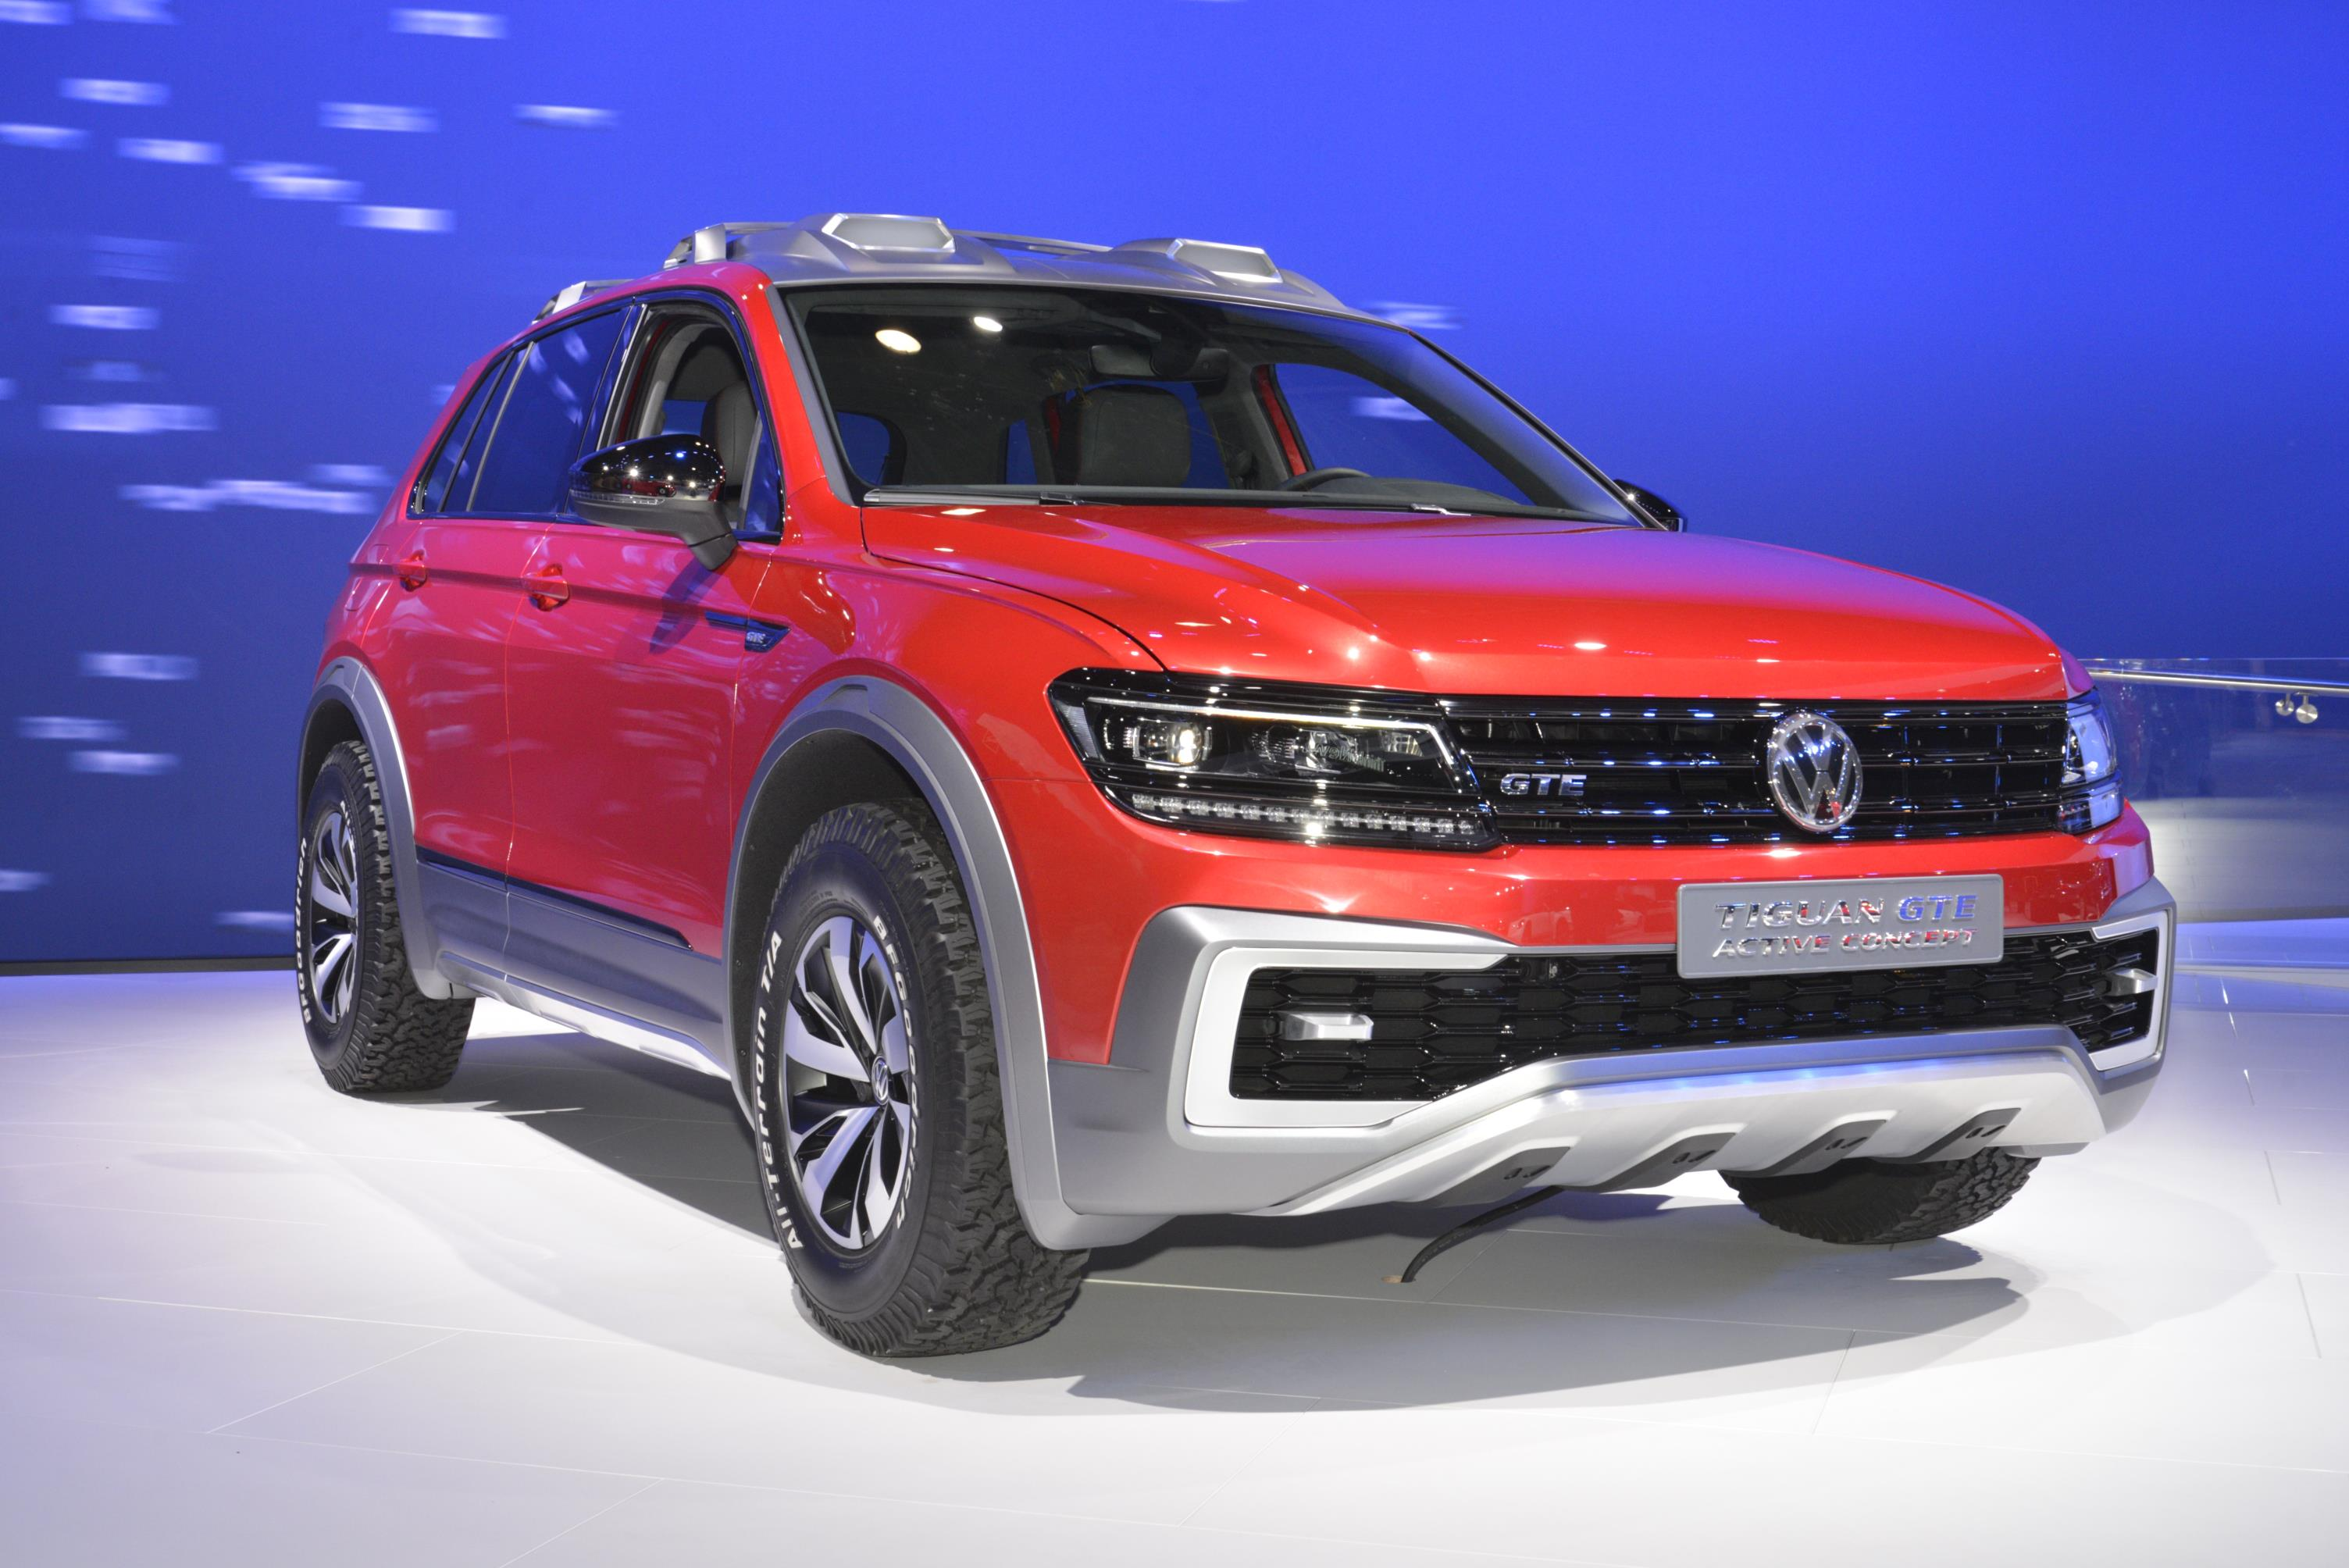 Volkswagen Budd E Concept Looks Like A Scion Gadget At New